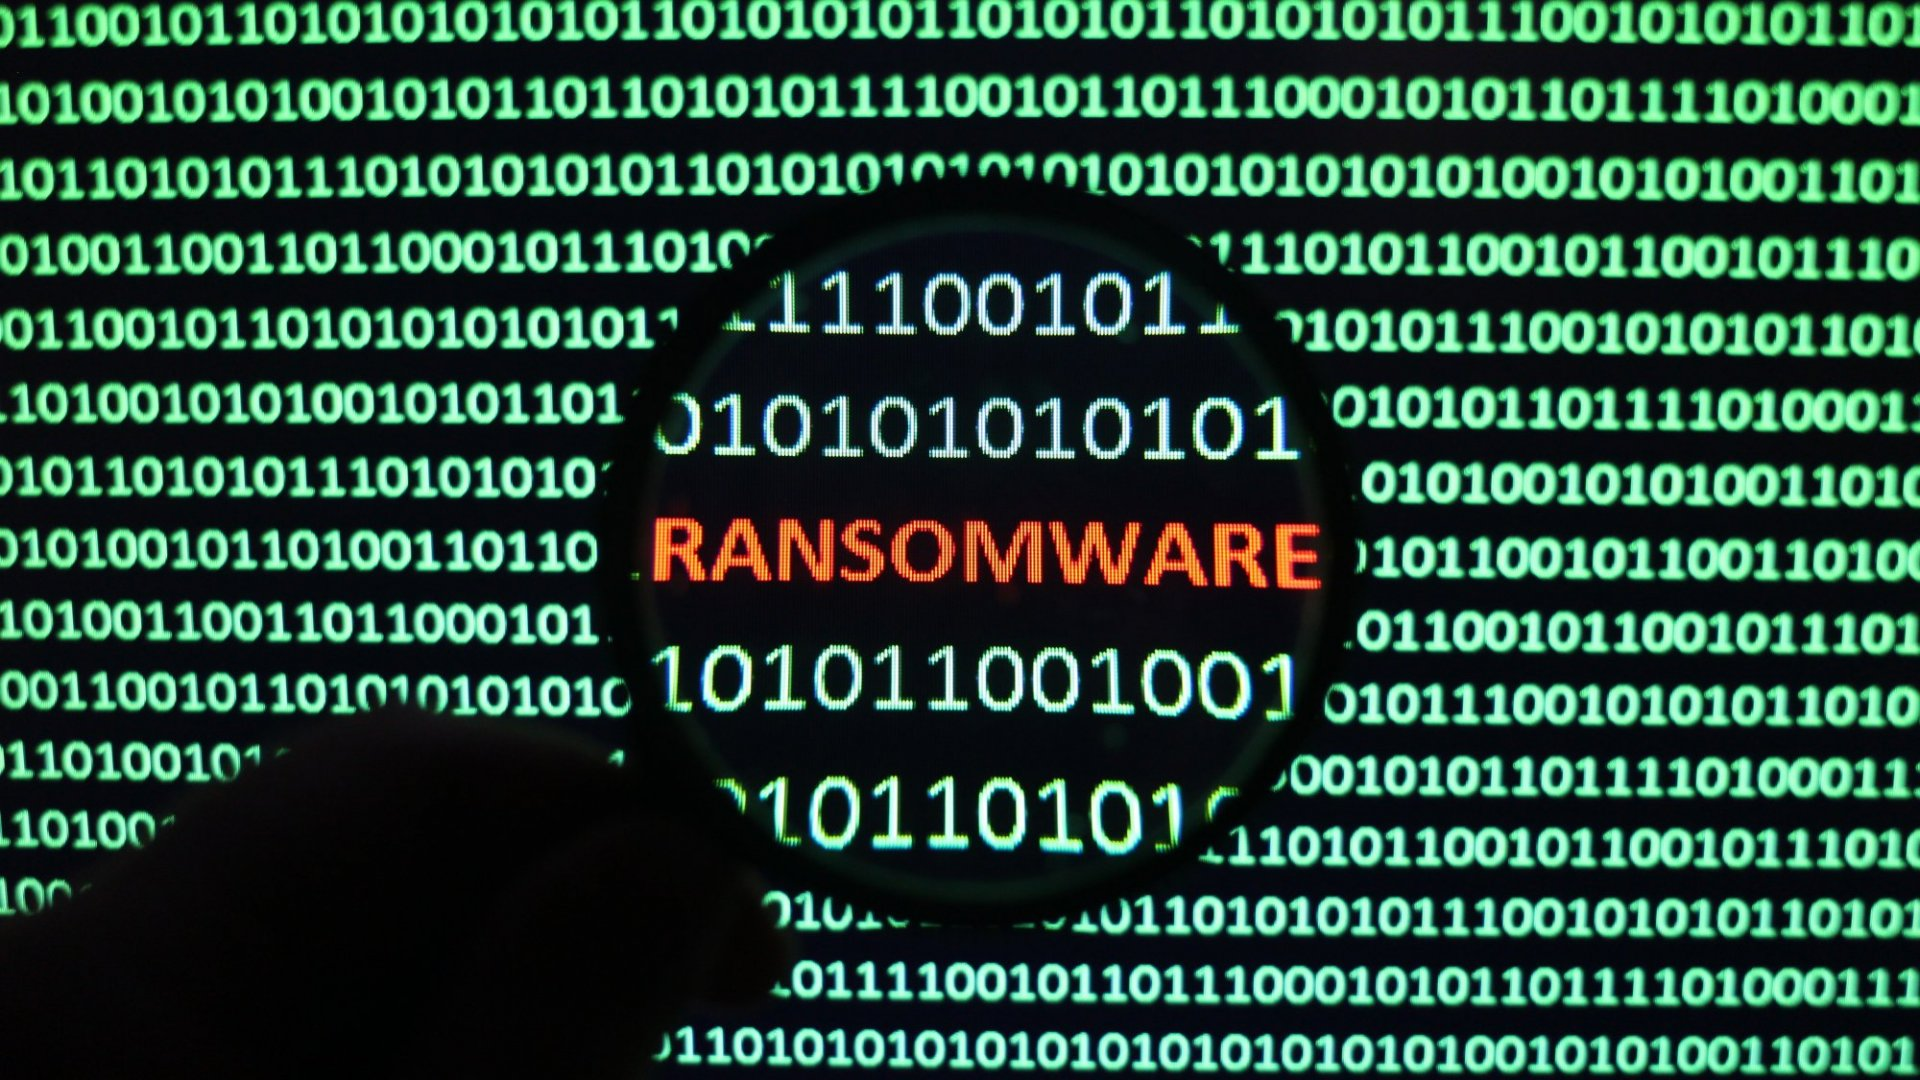 6 Ways Every Company Can Fight Ransomware Attacks